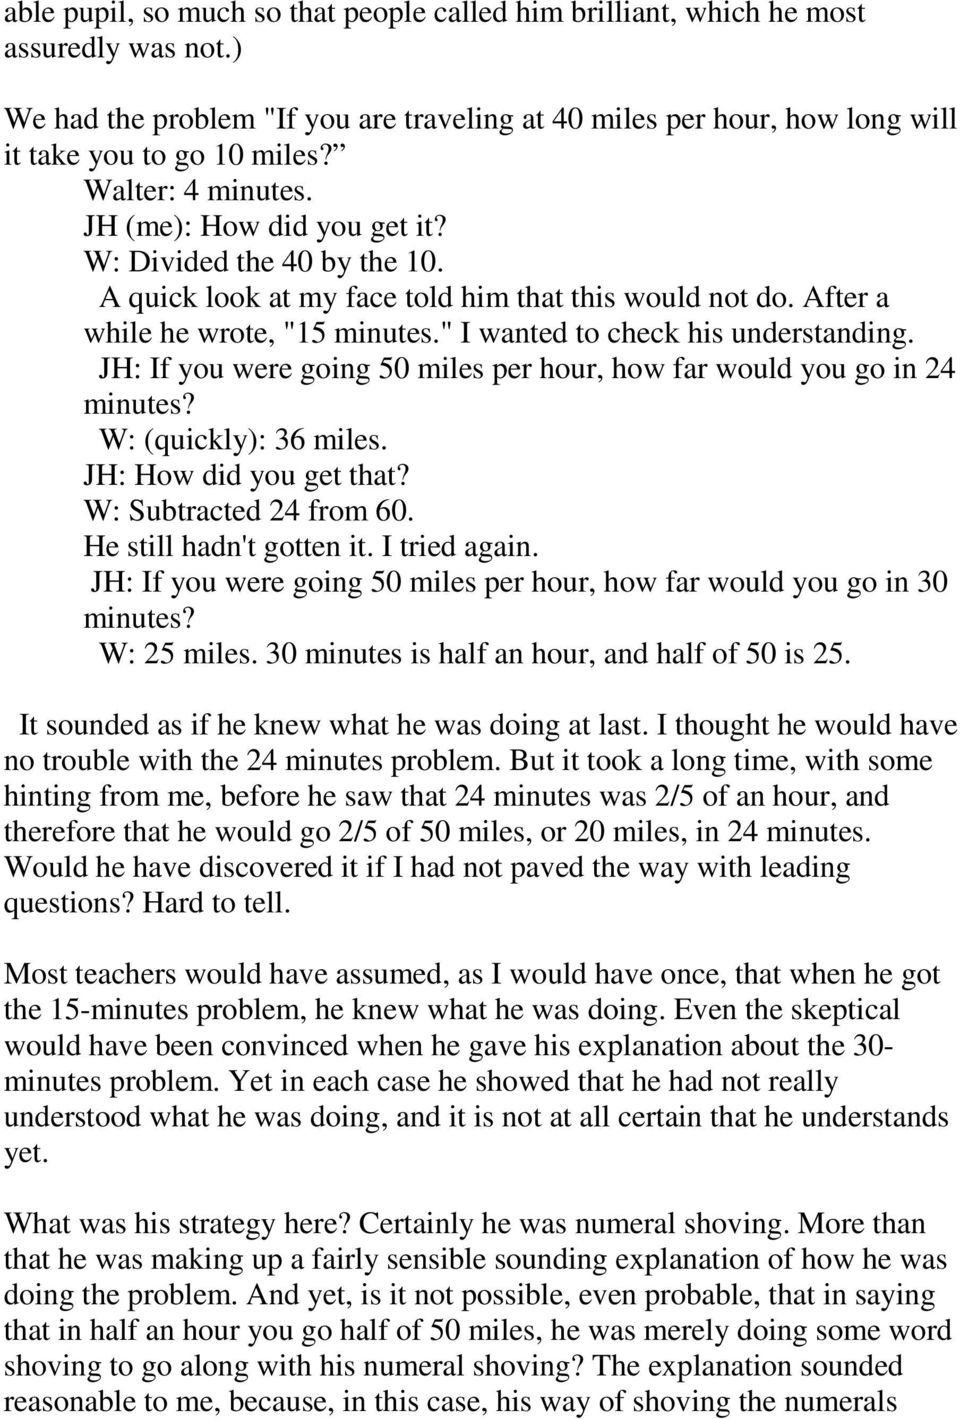 """ I wanted to check his understanding. JH: If you were going 50 miles per hour, how far would you go in 24 minutes? W: (quickly): 36 miles. JH: How did you get that? W: Subtracted 24 from 60."